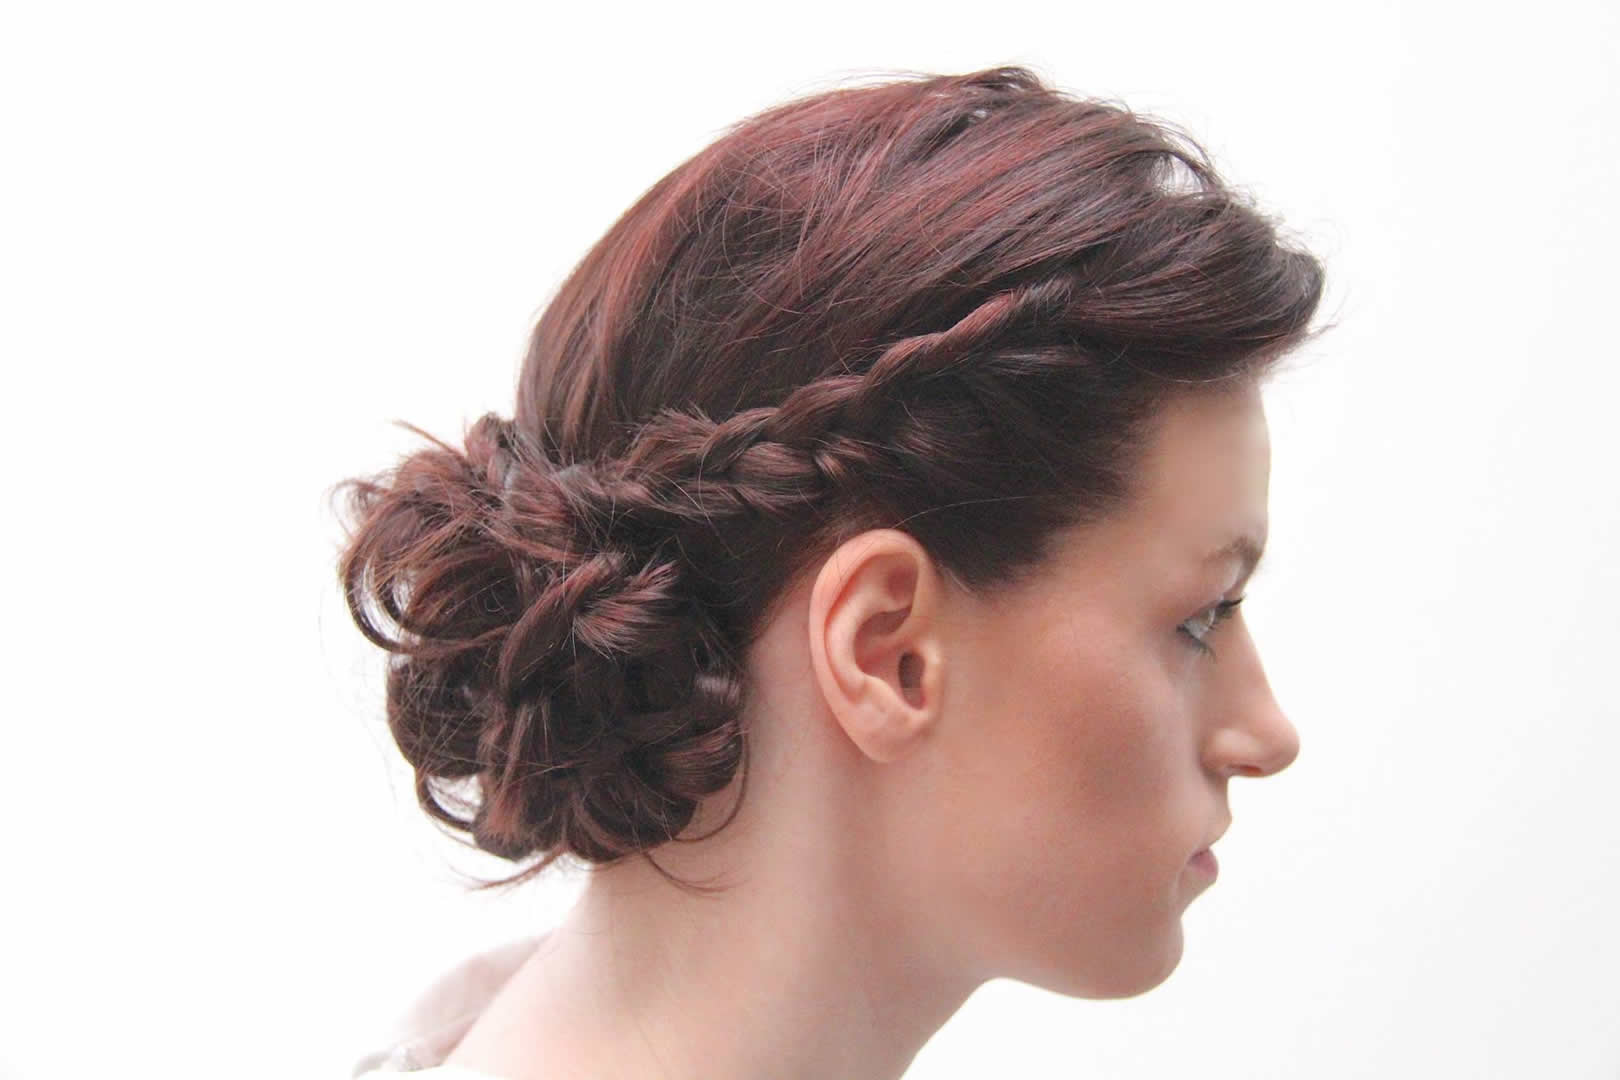 Hair Up Styling 2